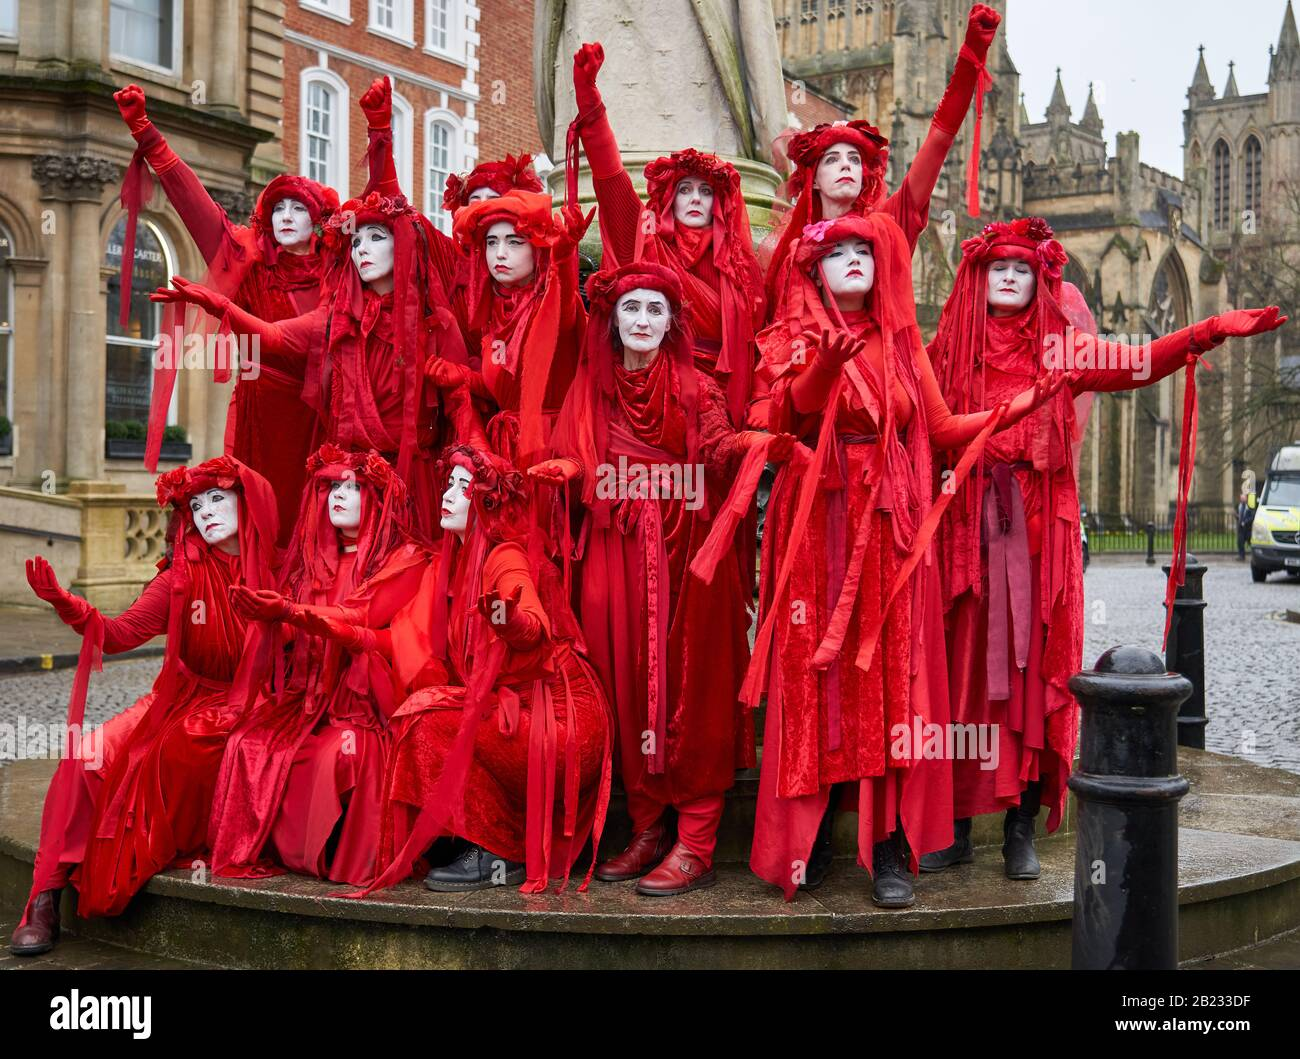 The Red Brigade of Extinction Rebellion displaying their striking poses in peaceful protest supporting action on climate change - Bristol UK Stock Photo